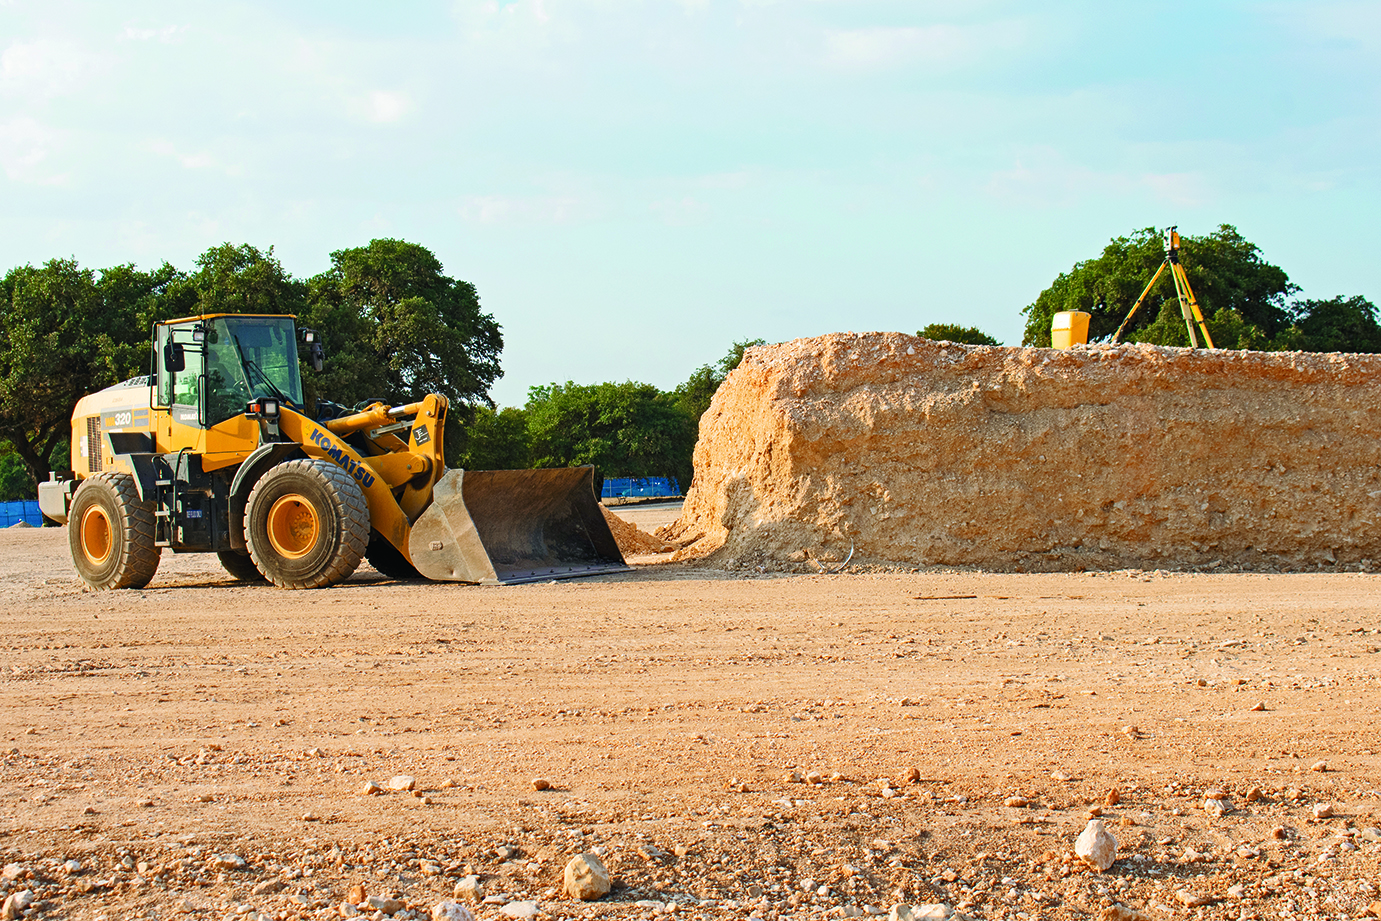 DOWN IN THE DIRT: A front loader is parked by the dirt mound which will be a part of the mound in the parking garage. The laser mounted on the tripod on top of the mound is used to establish grade and elevation of the parking garage.